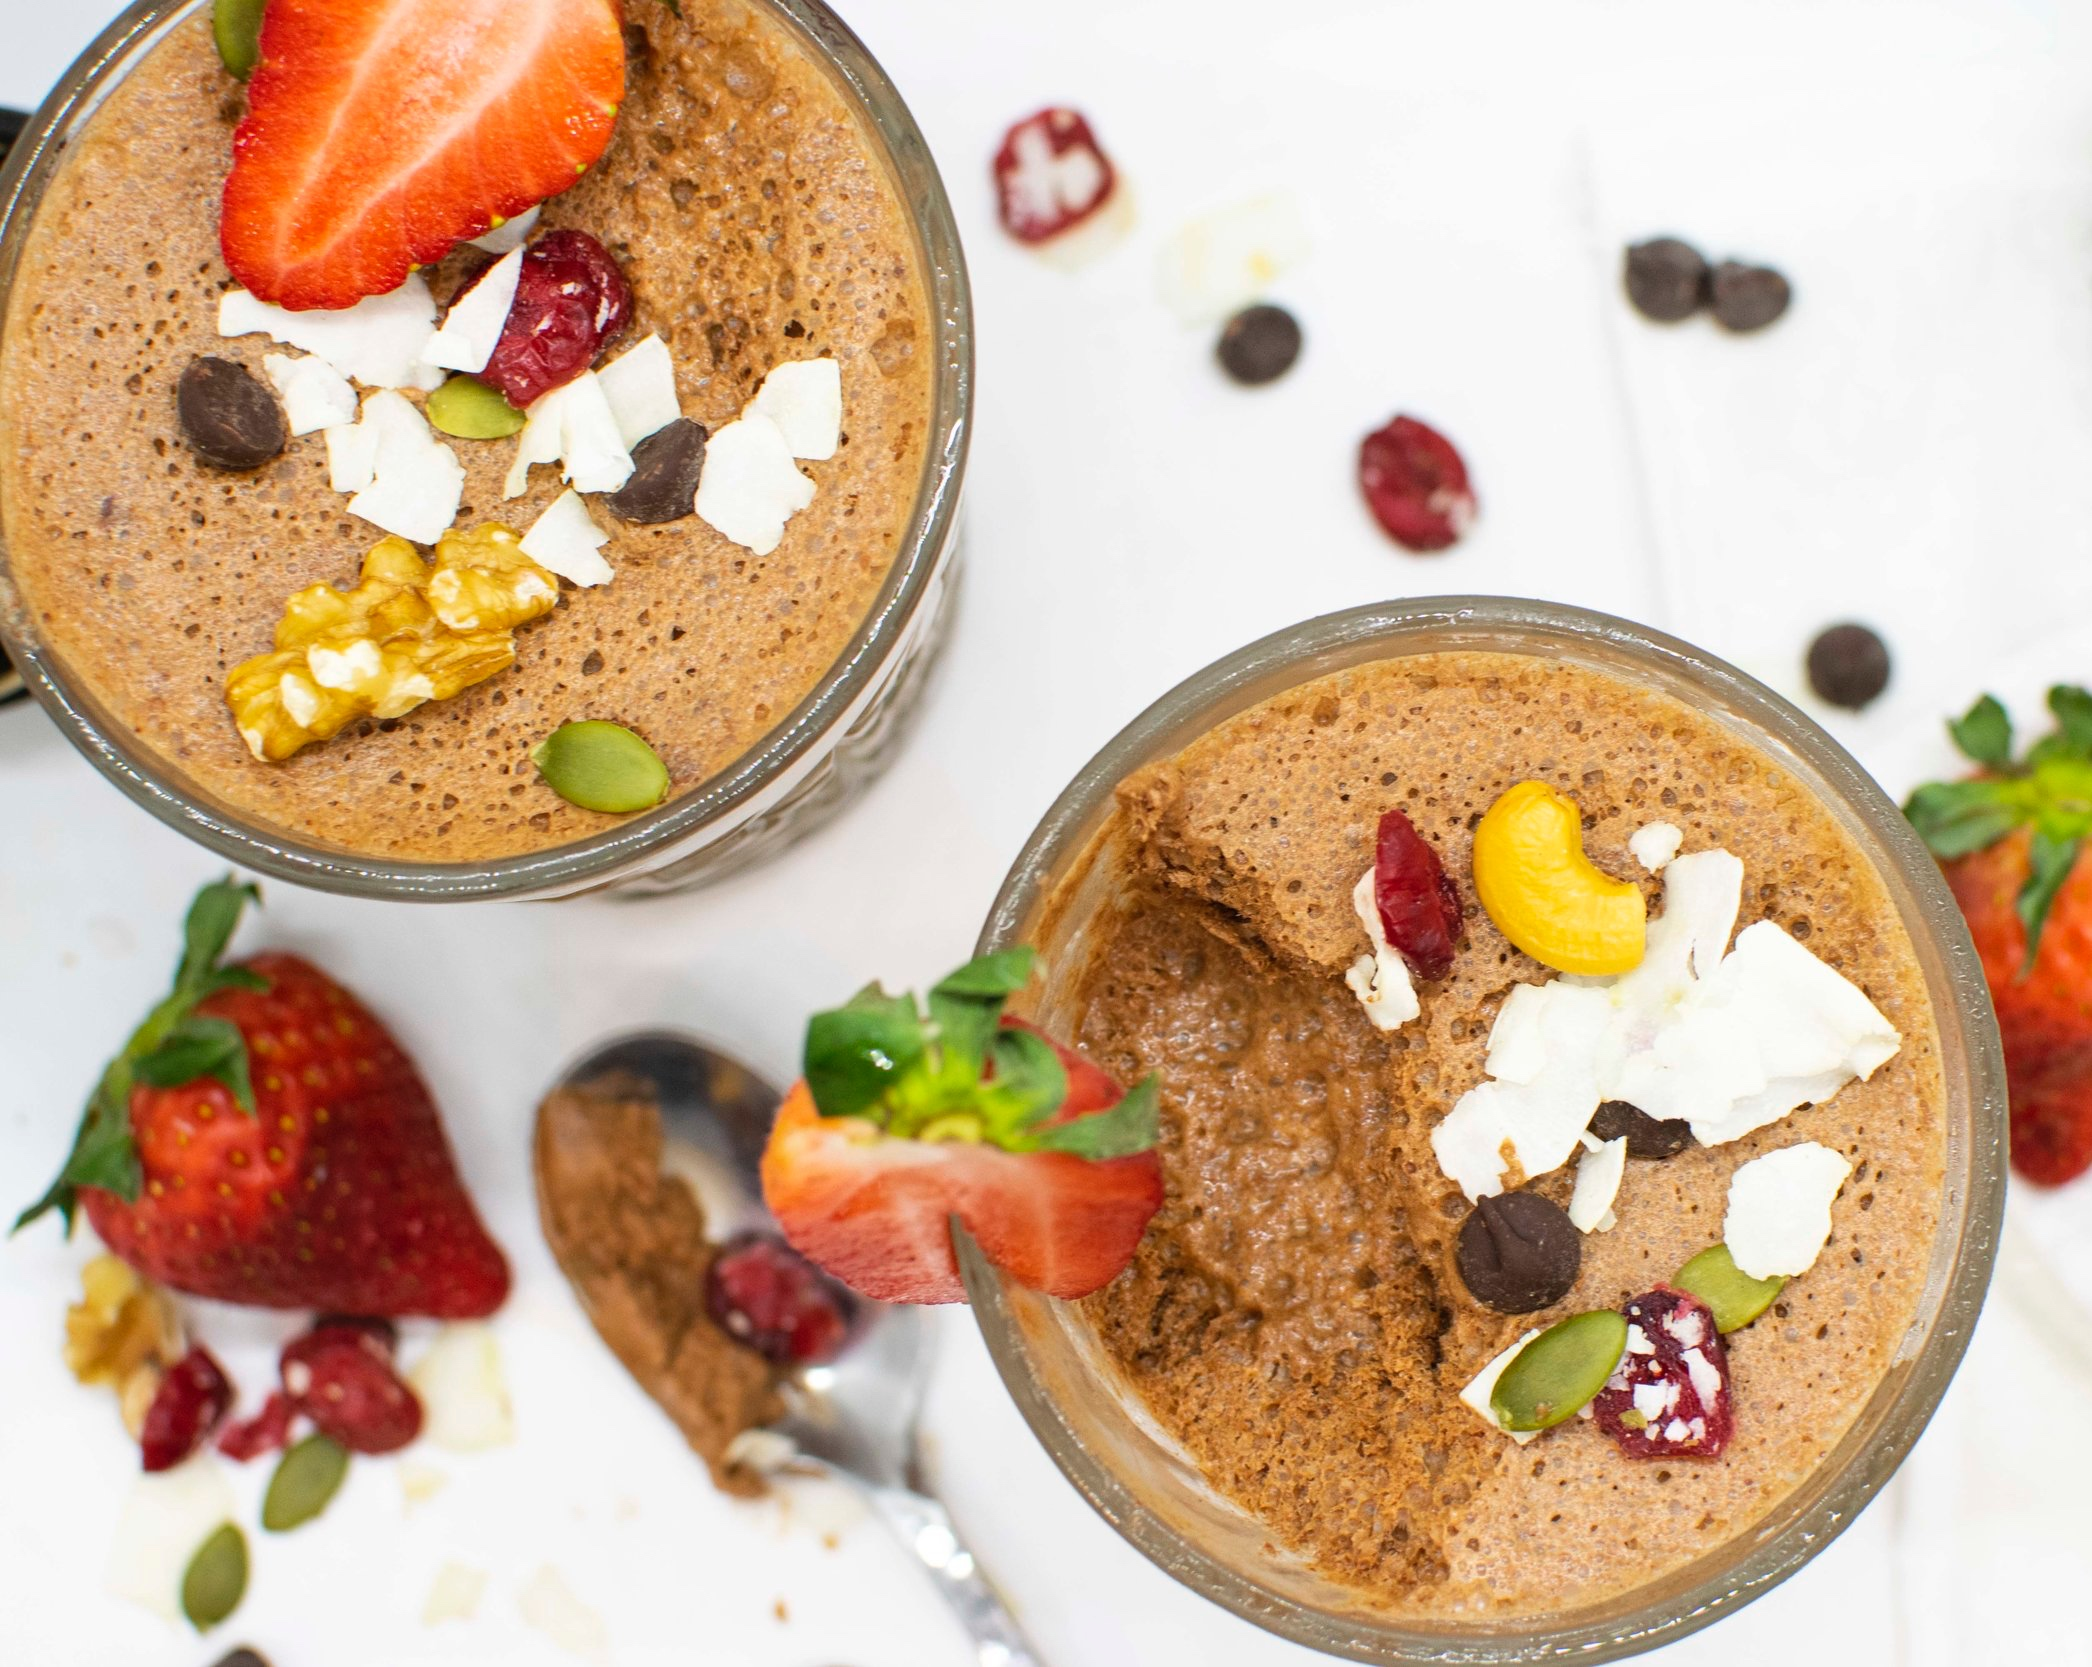 Chocolate mousse from chickpea water! Vegan, dairy-free, and a healthier alternative.  These are the perfect healthy treat and super simple to make.